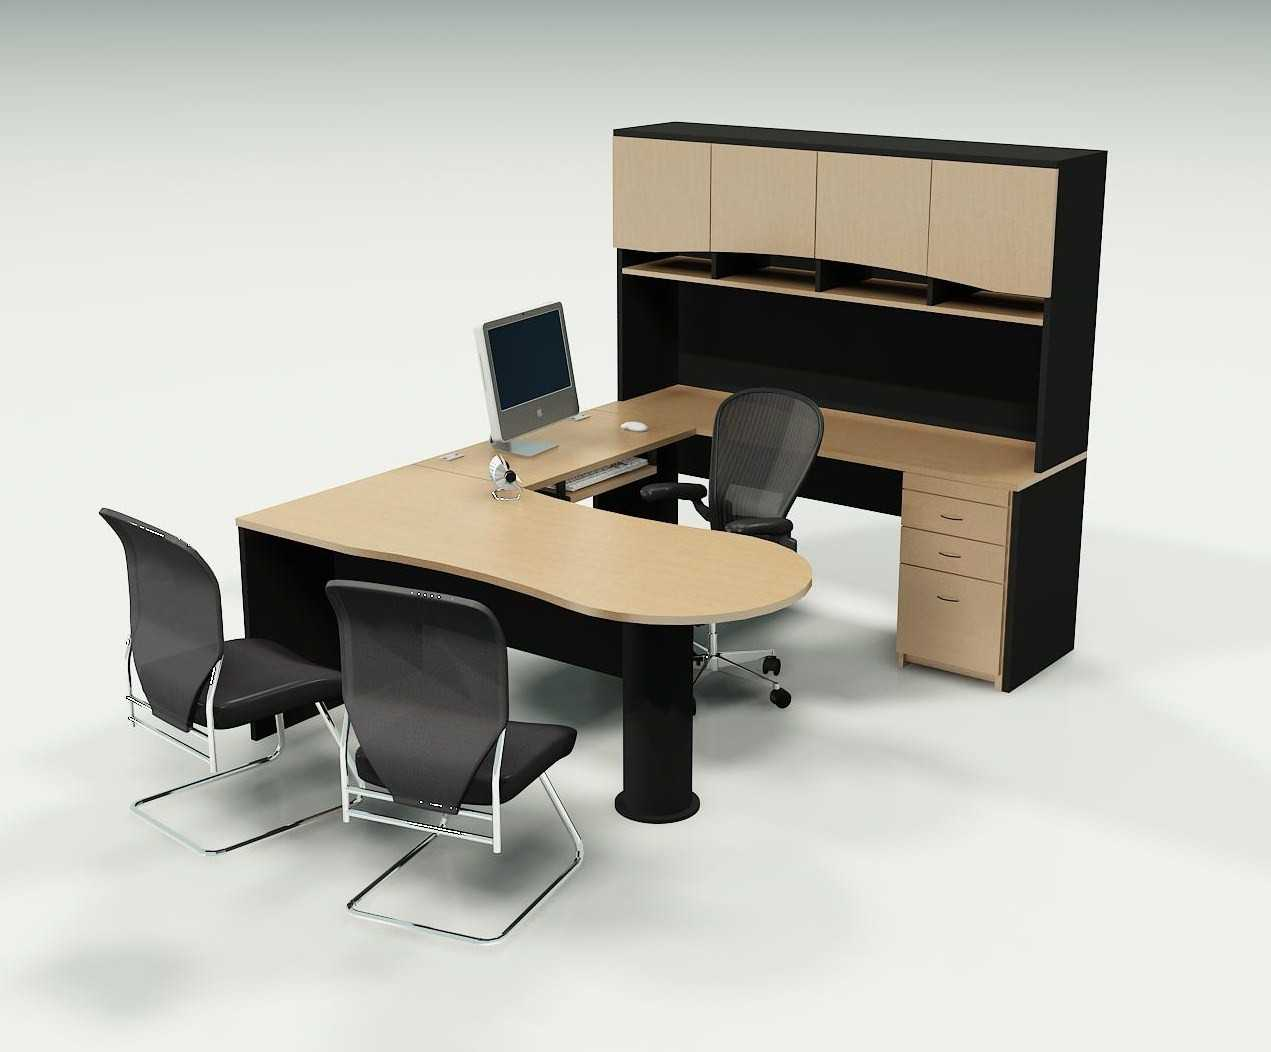 office furniture ideas in creative style ForCreative Office Furniture Ideas